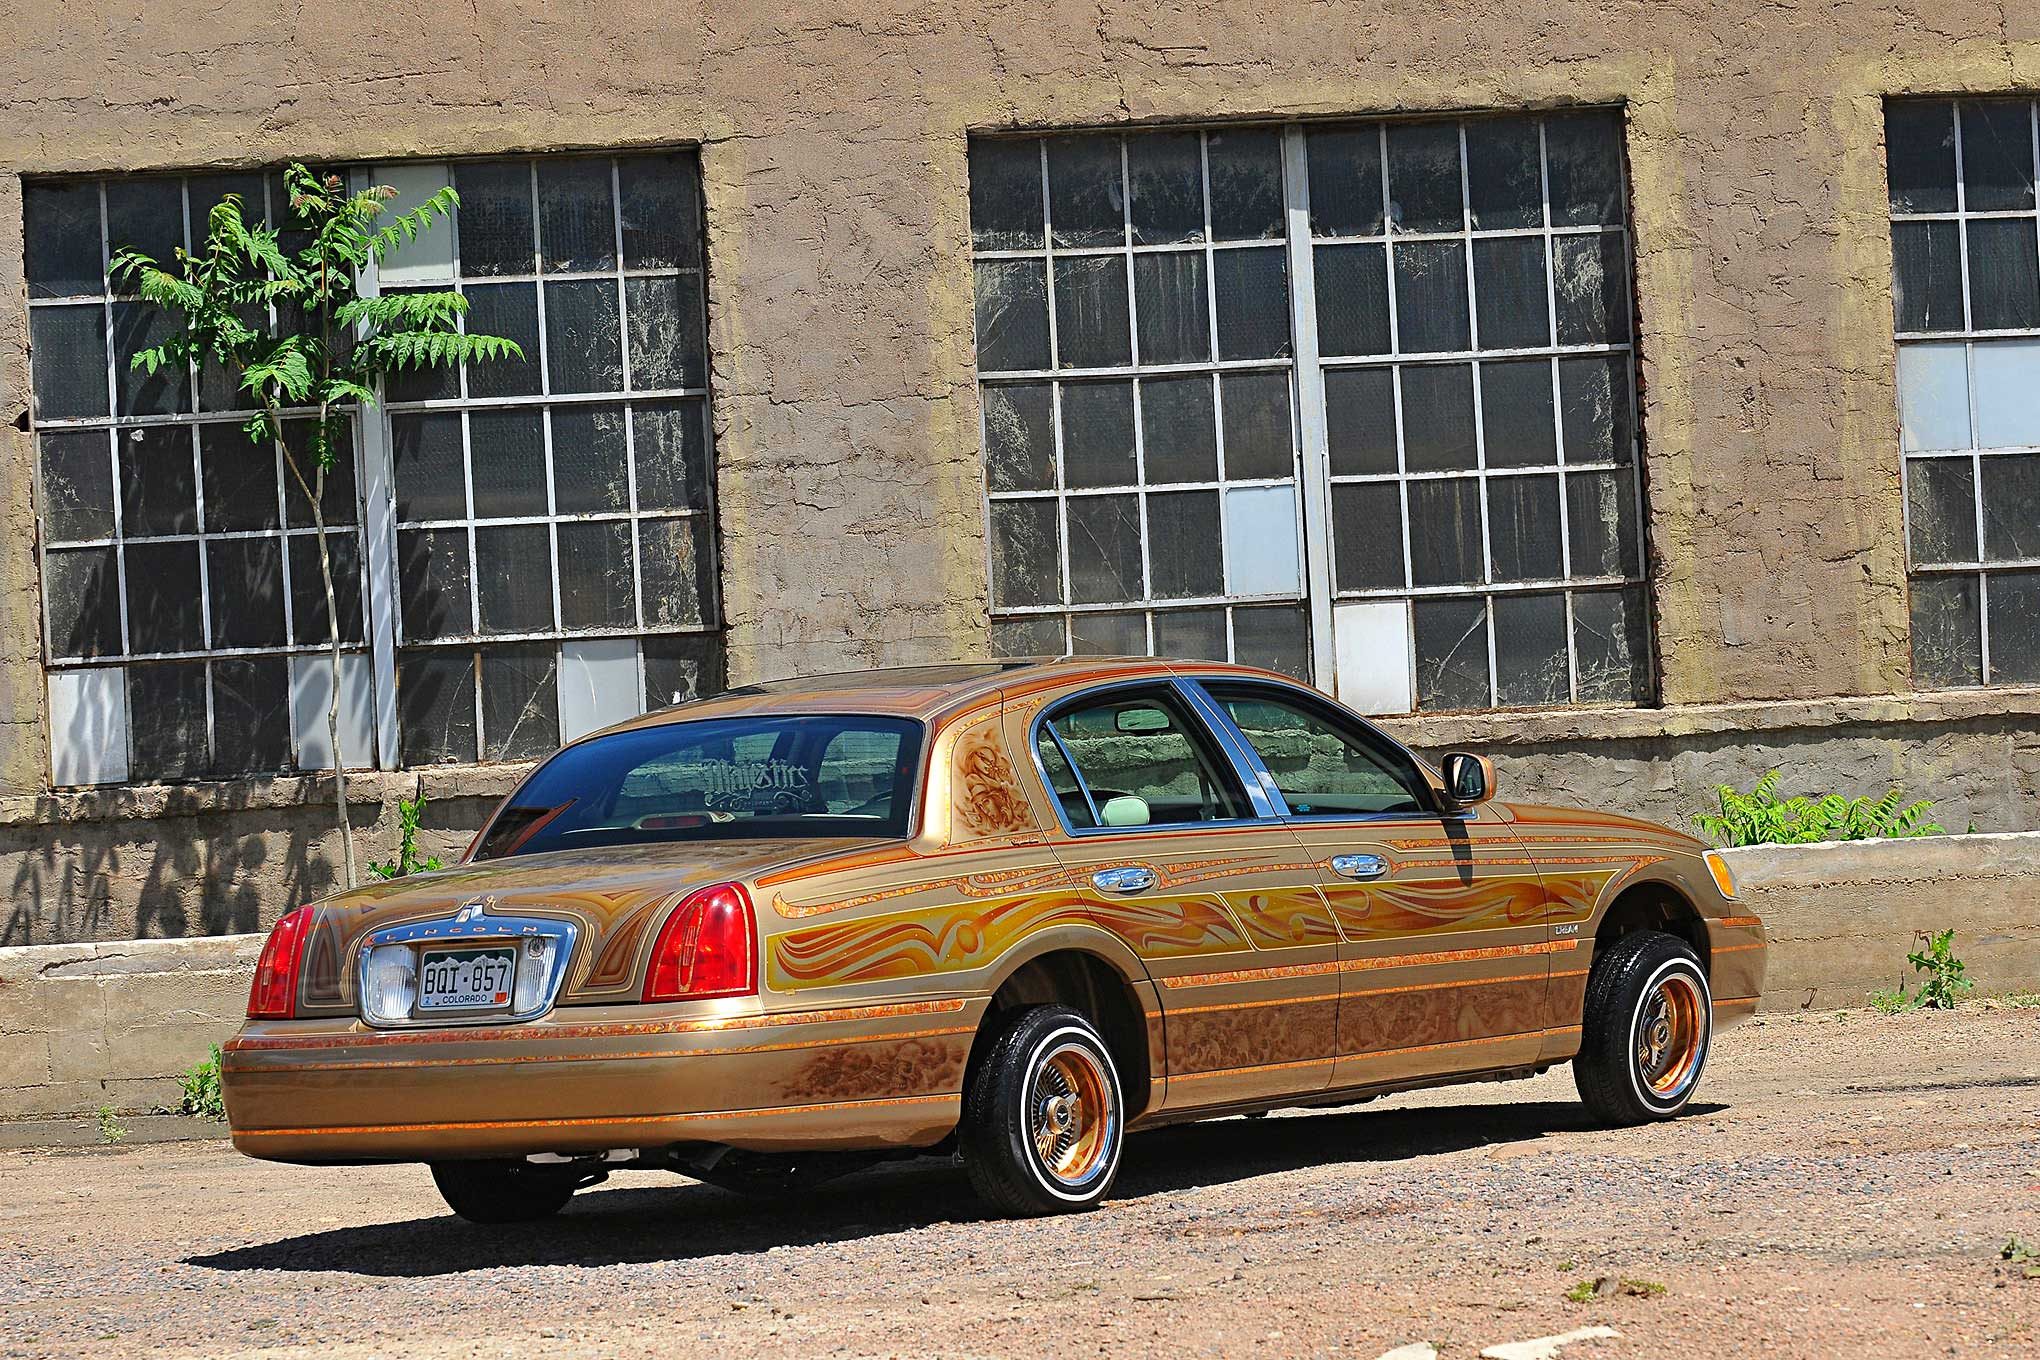 1998 Lincoln Towncar Back Passenger Side Rear View Lowrider